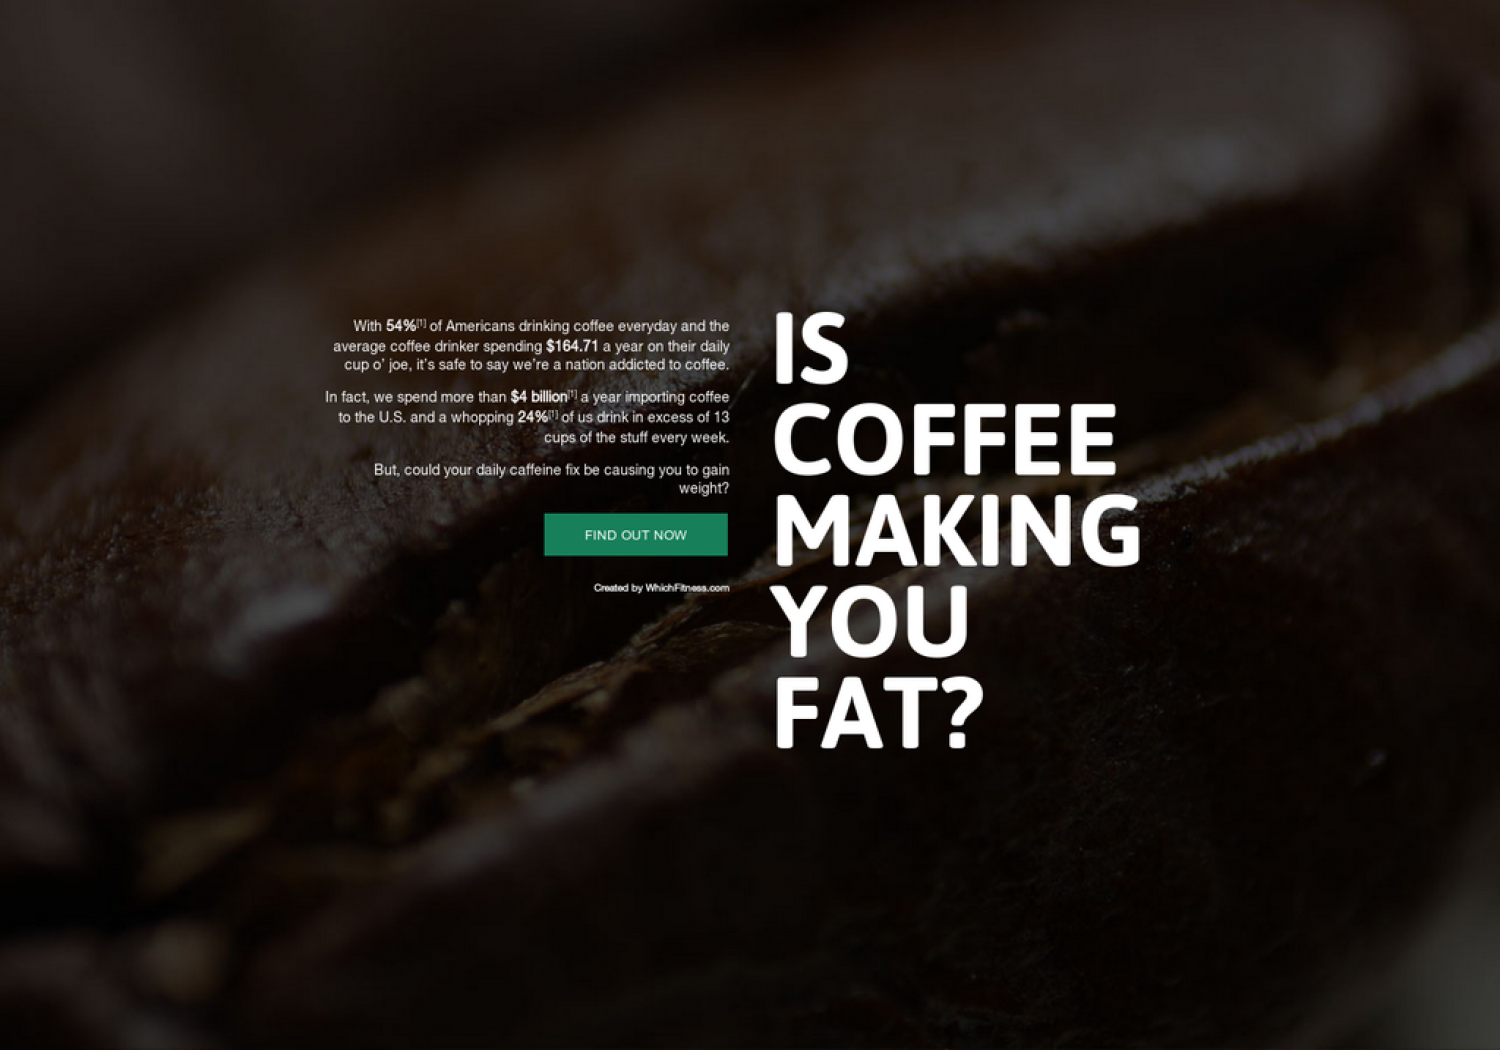 Is Coffee Making You Fat? Infographic